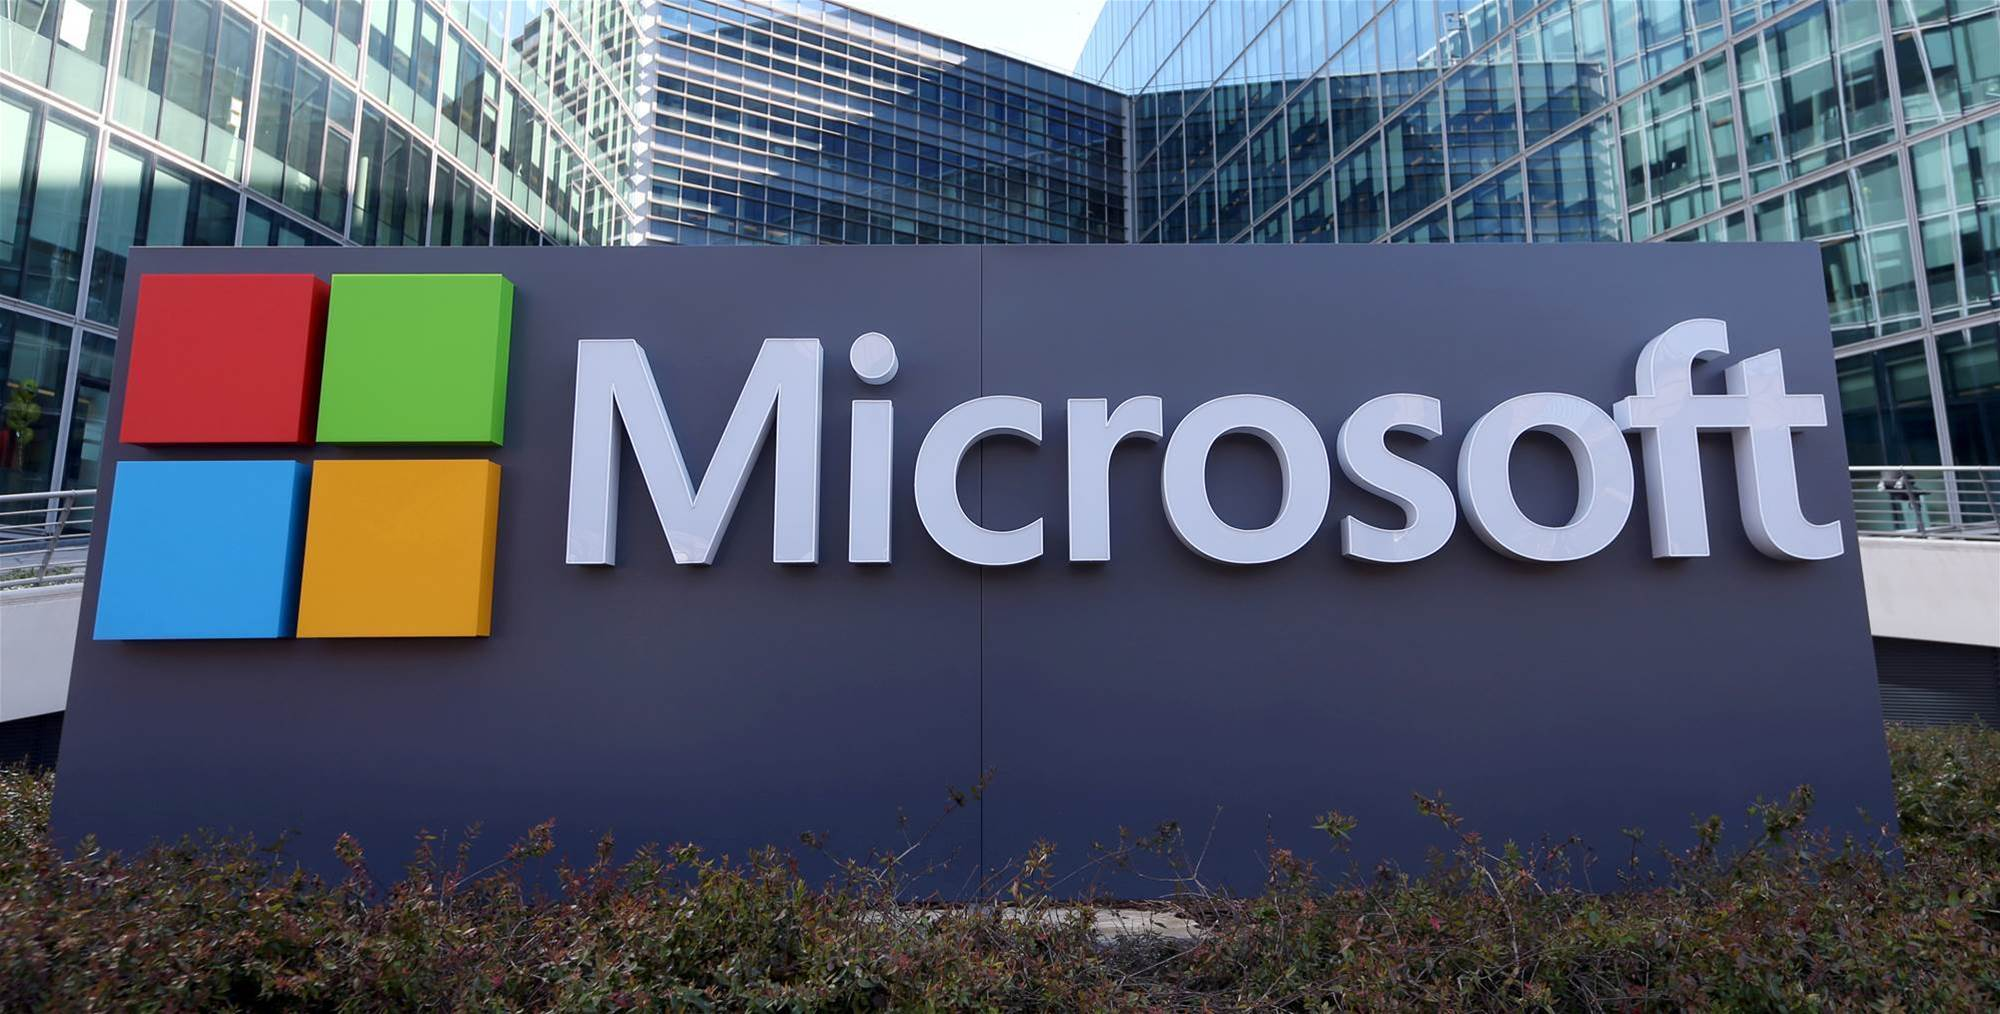 Microsoft discovers hacking that targets Euro democratic institutions